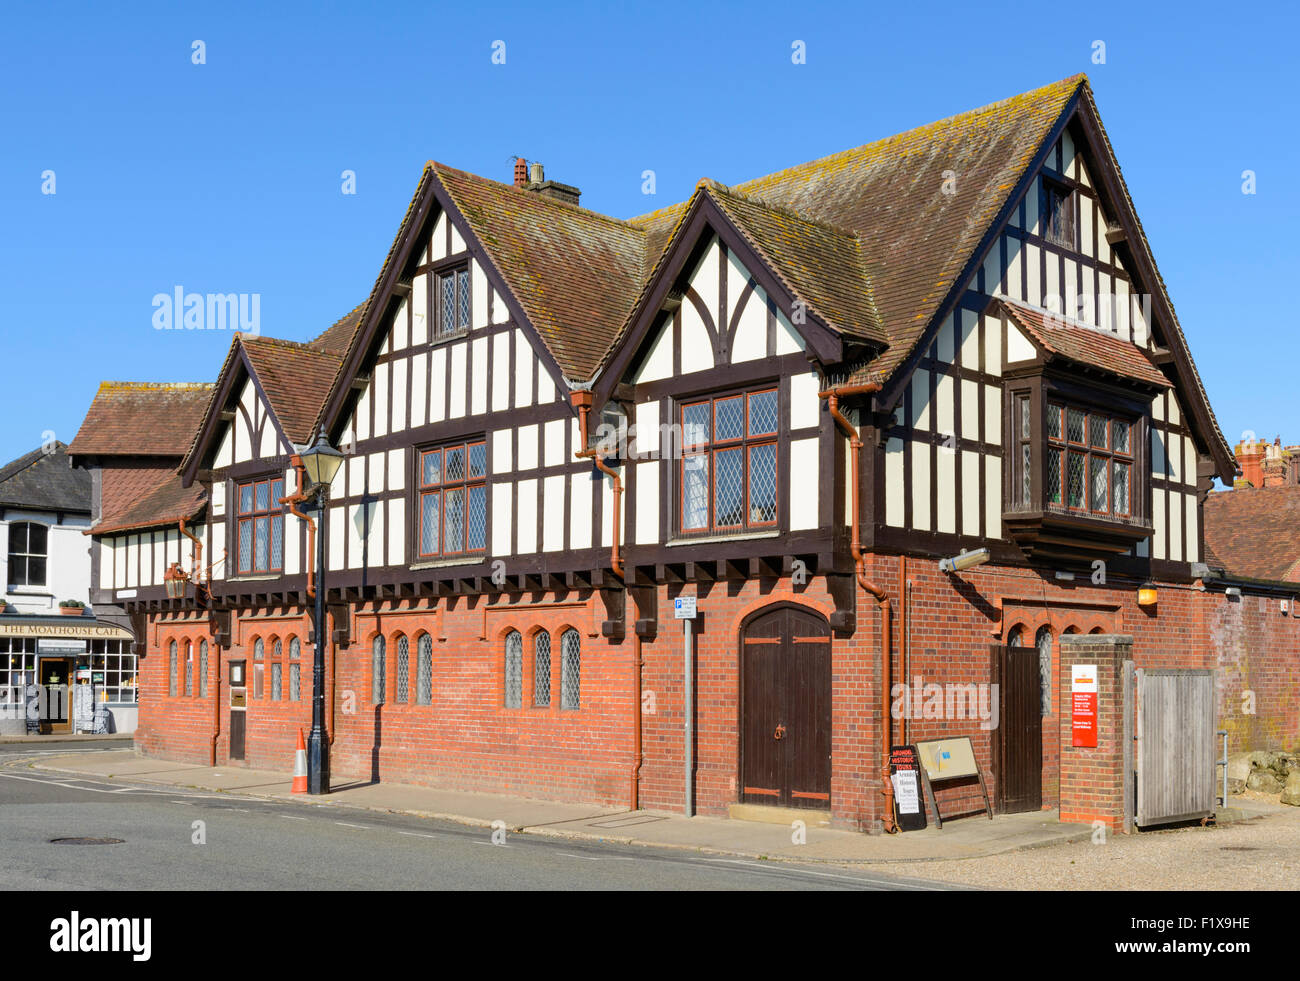 Tudor Style the post office, a mock tudor style building in the historic